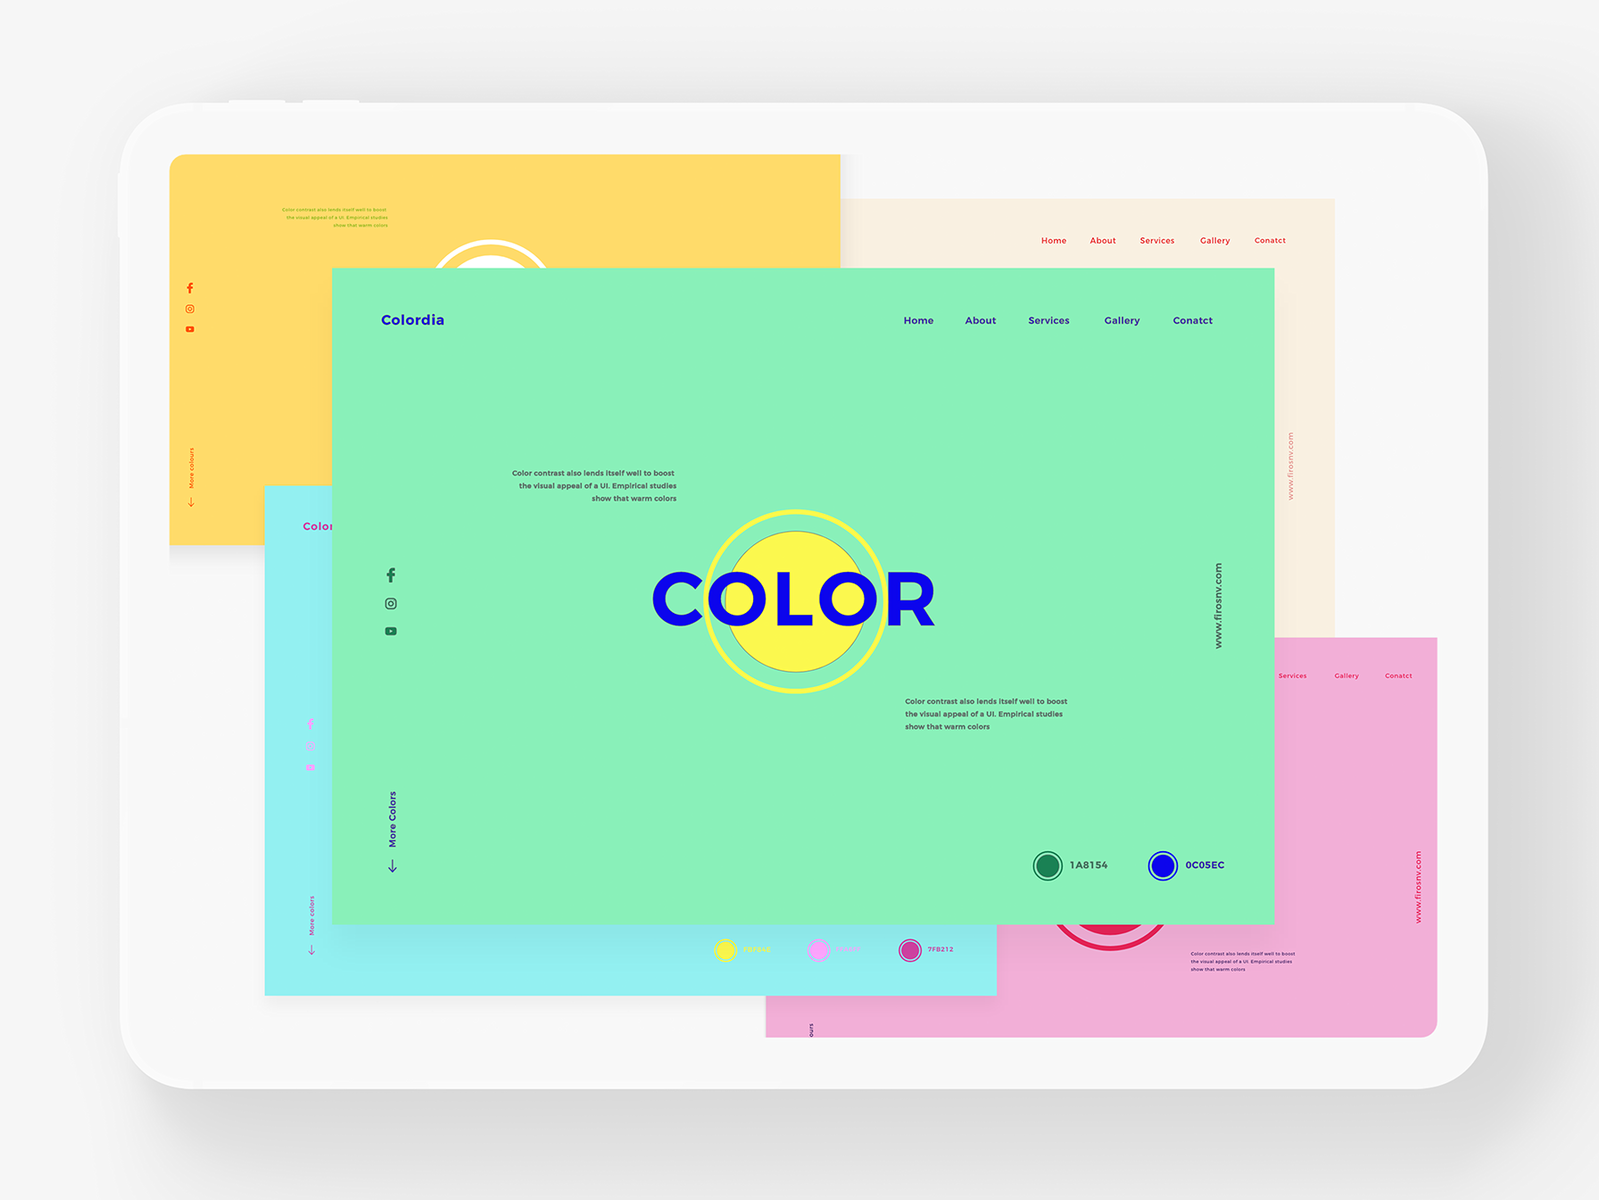 Color Schemes inWeb Design 2019 yellow blue ios branding typography vector icon illustration behance web colors design minimal interface dribbble colorpalette color ux ui